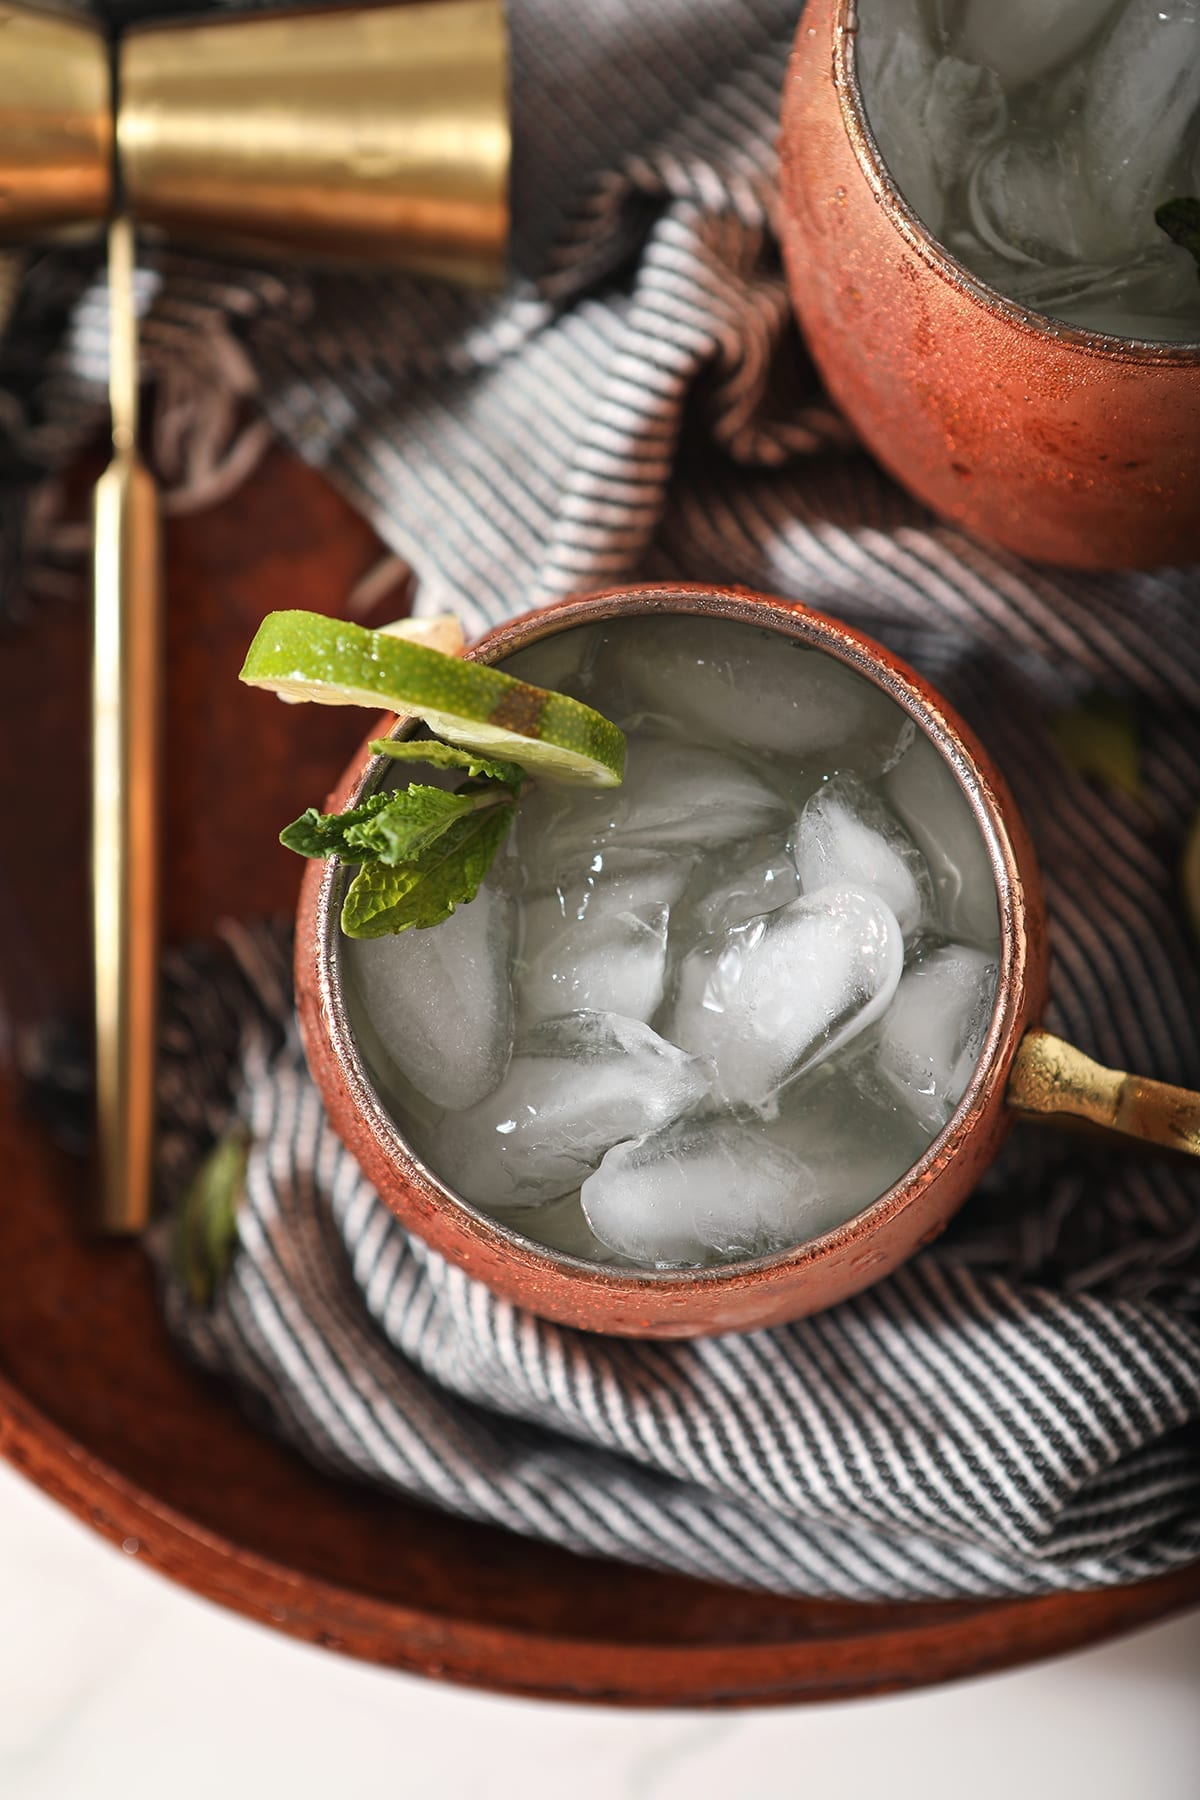 Overhead close up of a mule mug holding a Gin Gin Mule on top of a blue striped towel on a brown serving platter